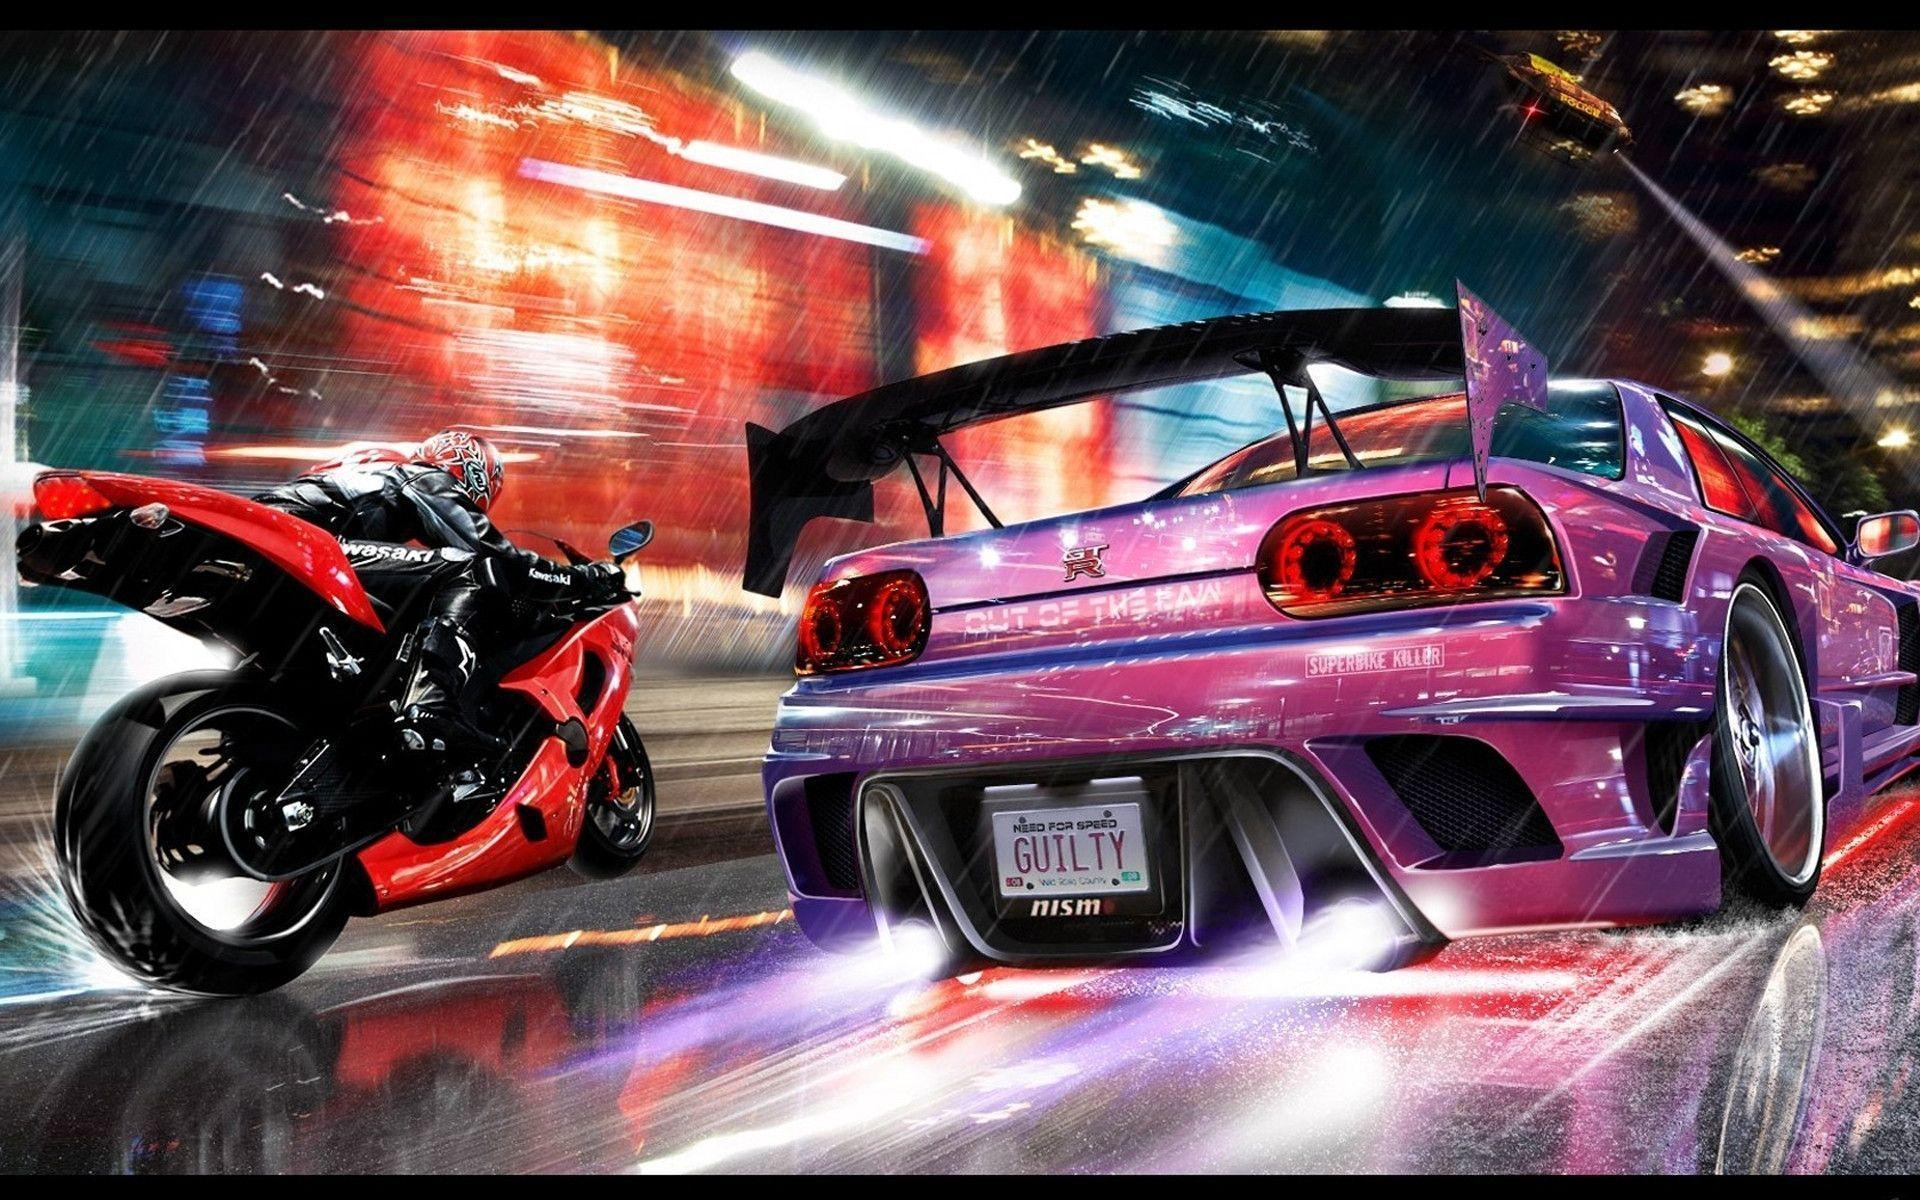 Need For Speed Wallpapers - Full HD wallpaper search - page 10